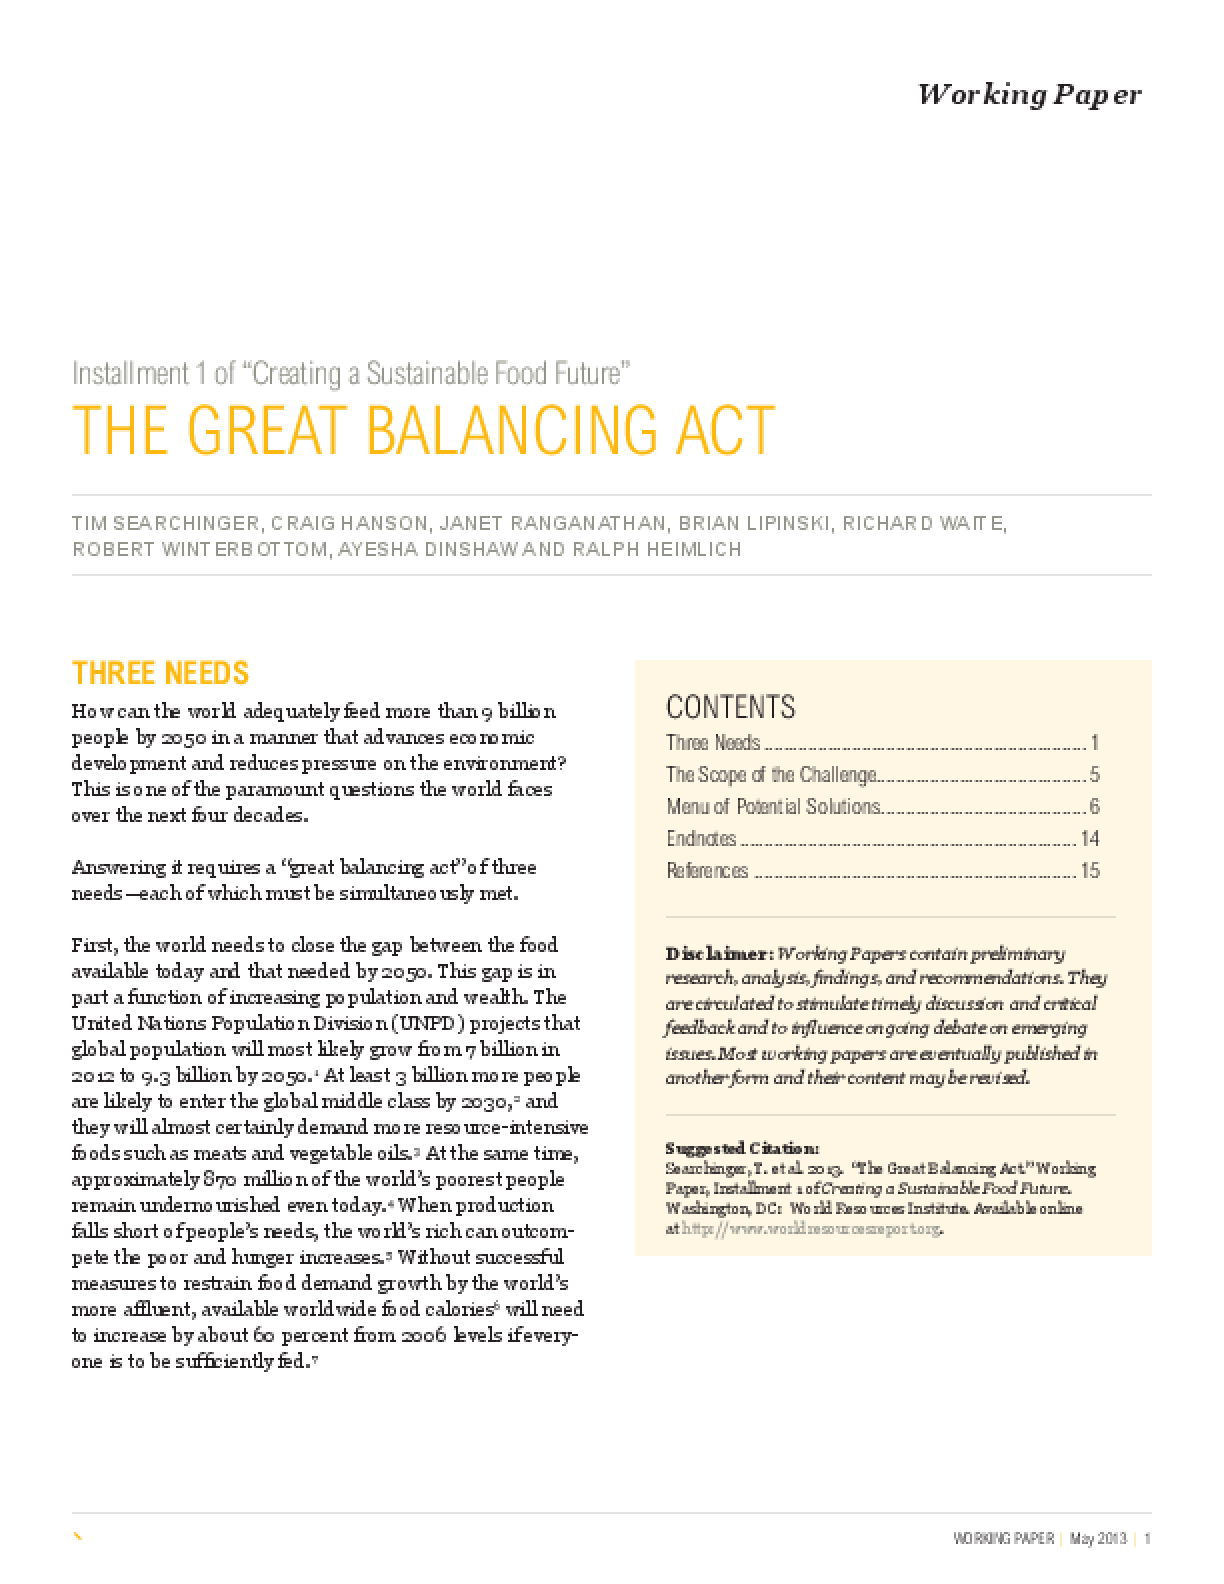 Installment 1 of Creating a Sustainable Food Future: The Great Balancing Act